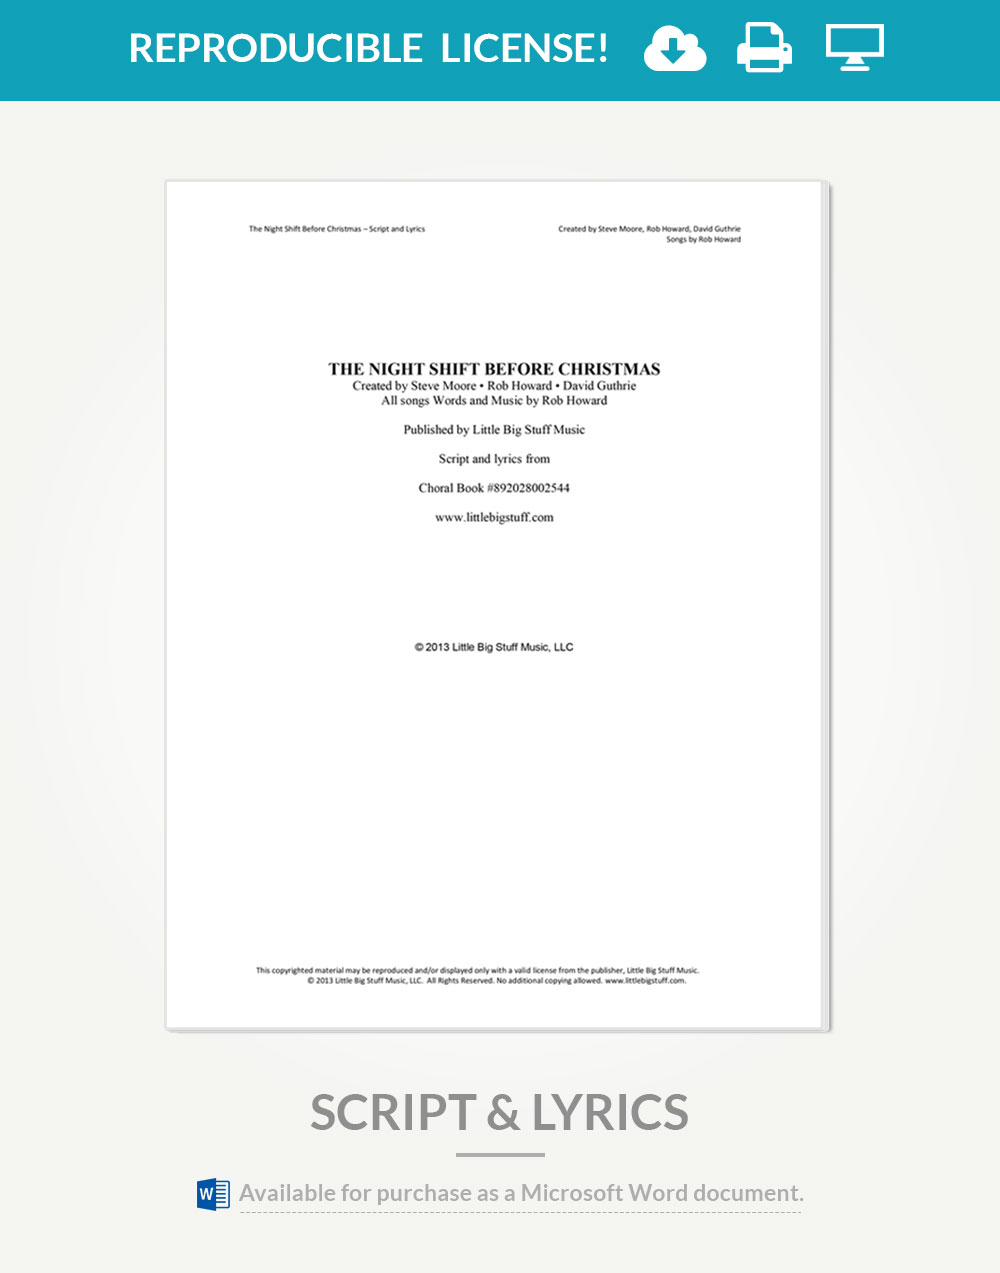 The Night Shift Before Christmas Reproducible Script & Lyrics ...